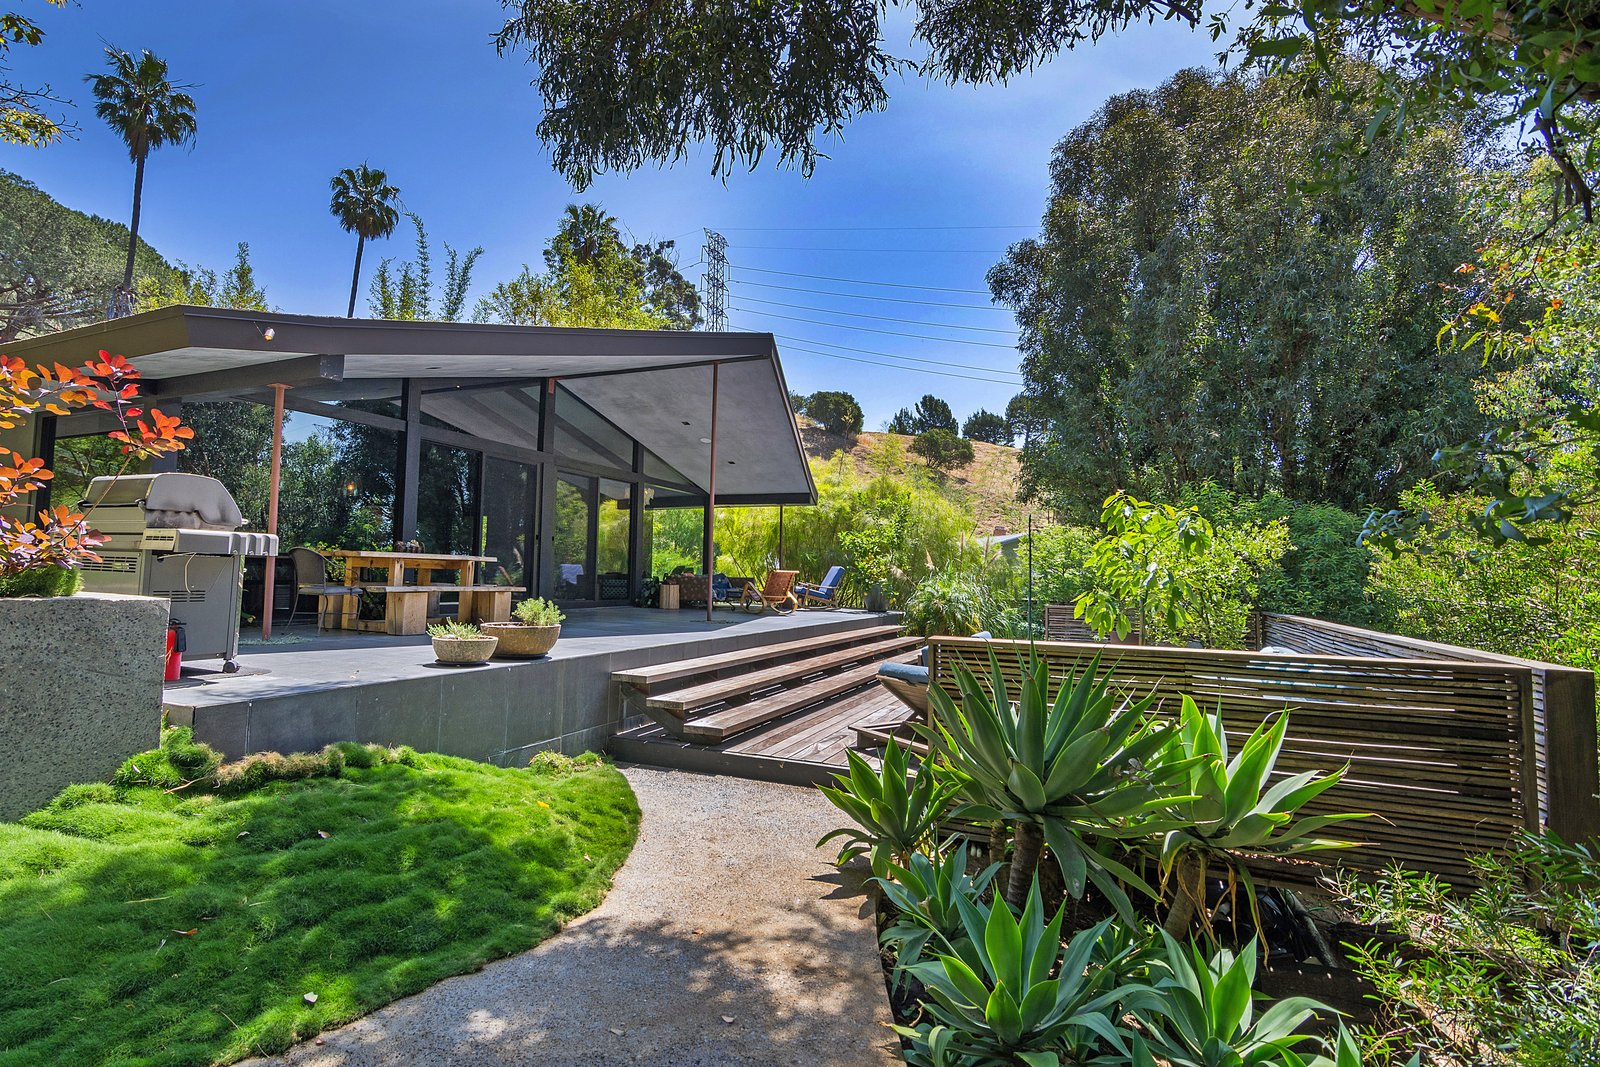 Outdoor, Horizontal Fences, Wall, Wood Patio, Porch, Deck, Large Pools, Tubs, Shower, Back Yard, Grass, Trees, Concrete Patio, Porch, Deck, and Wood Fences, Wall  Photo 1 of 14 in John Legend and Chrissy Teigen's Former Midcentury Home in the Hollywood Hills Is For Sale